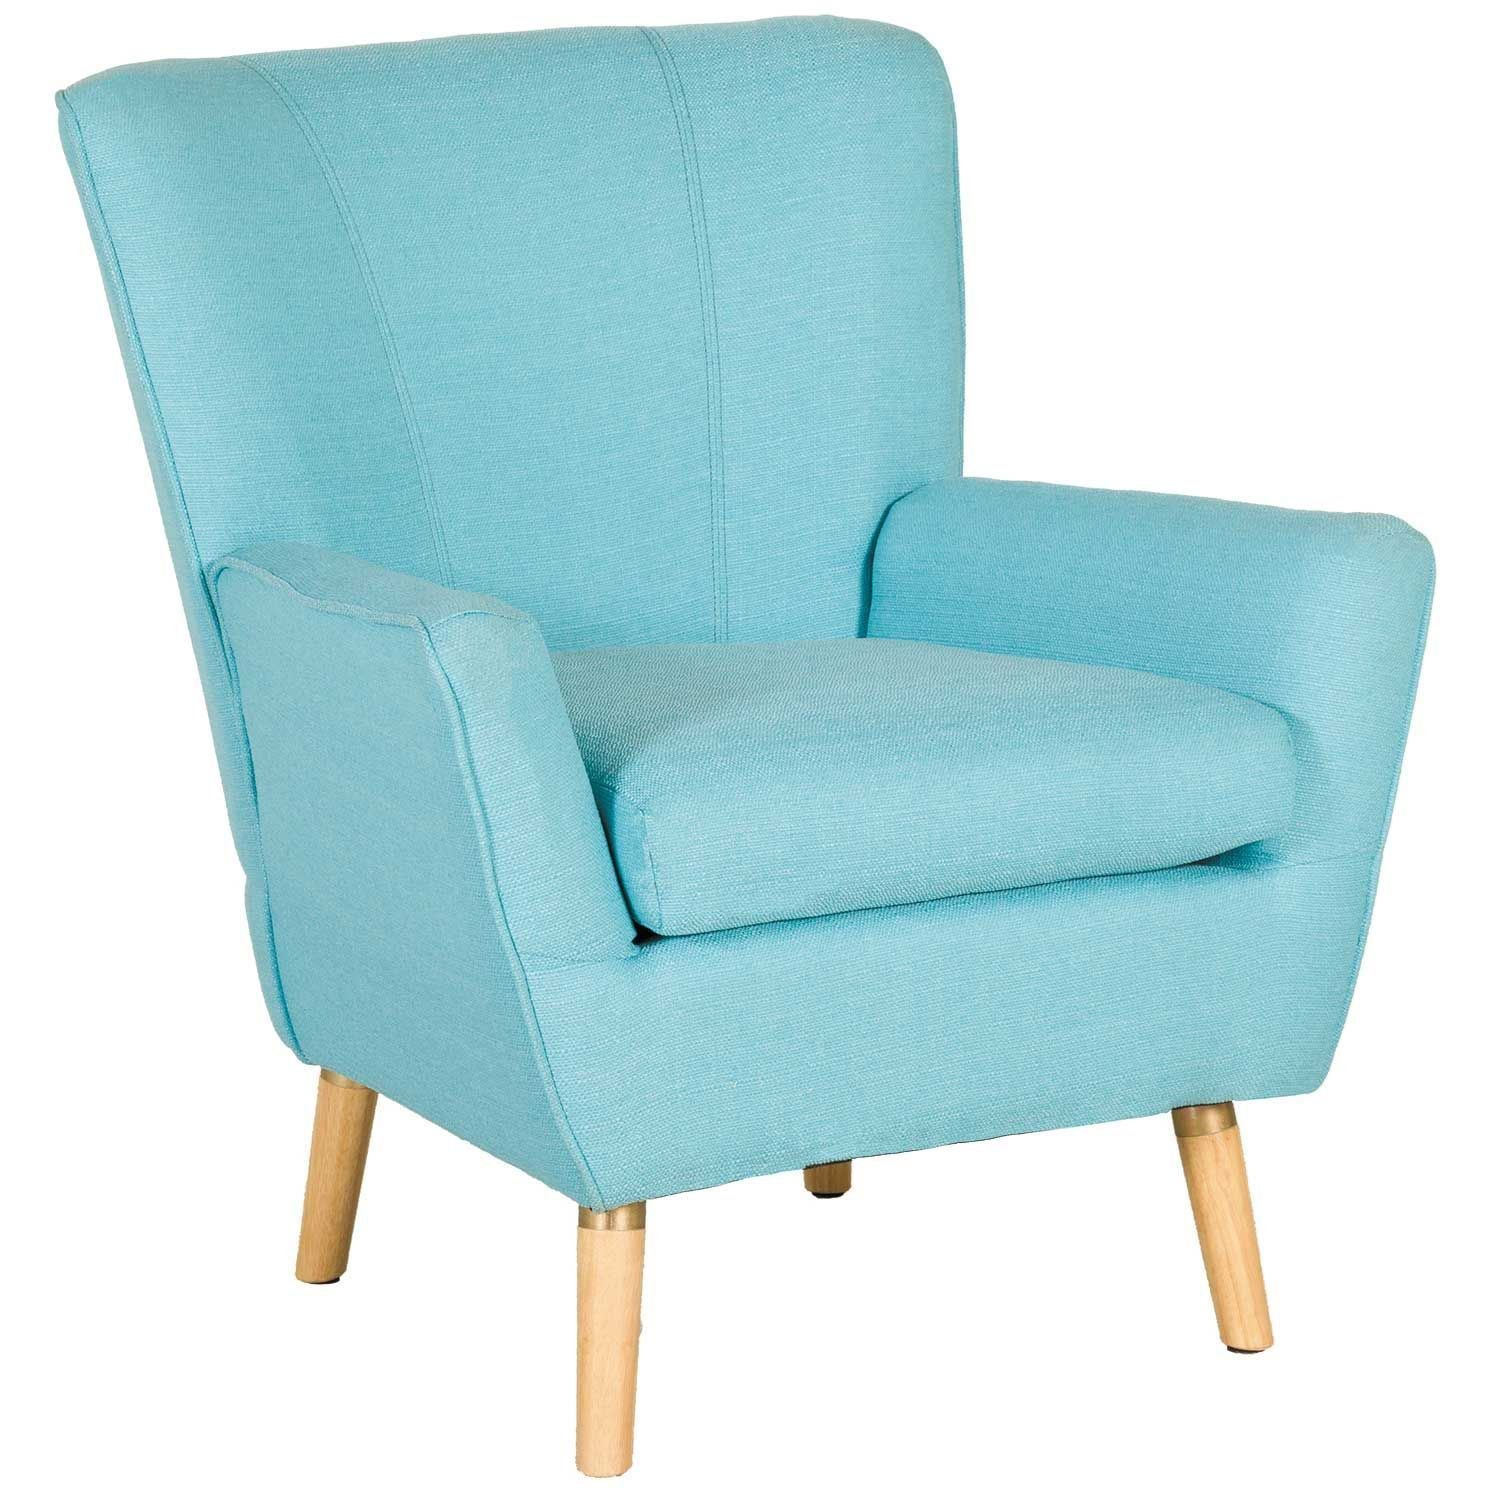 Mara Blue Accent Chair 1g 6020 Modern Amp Retro Accent